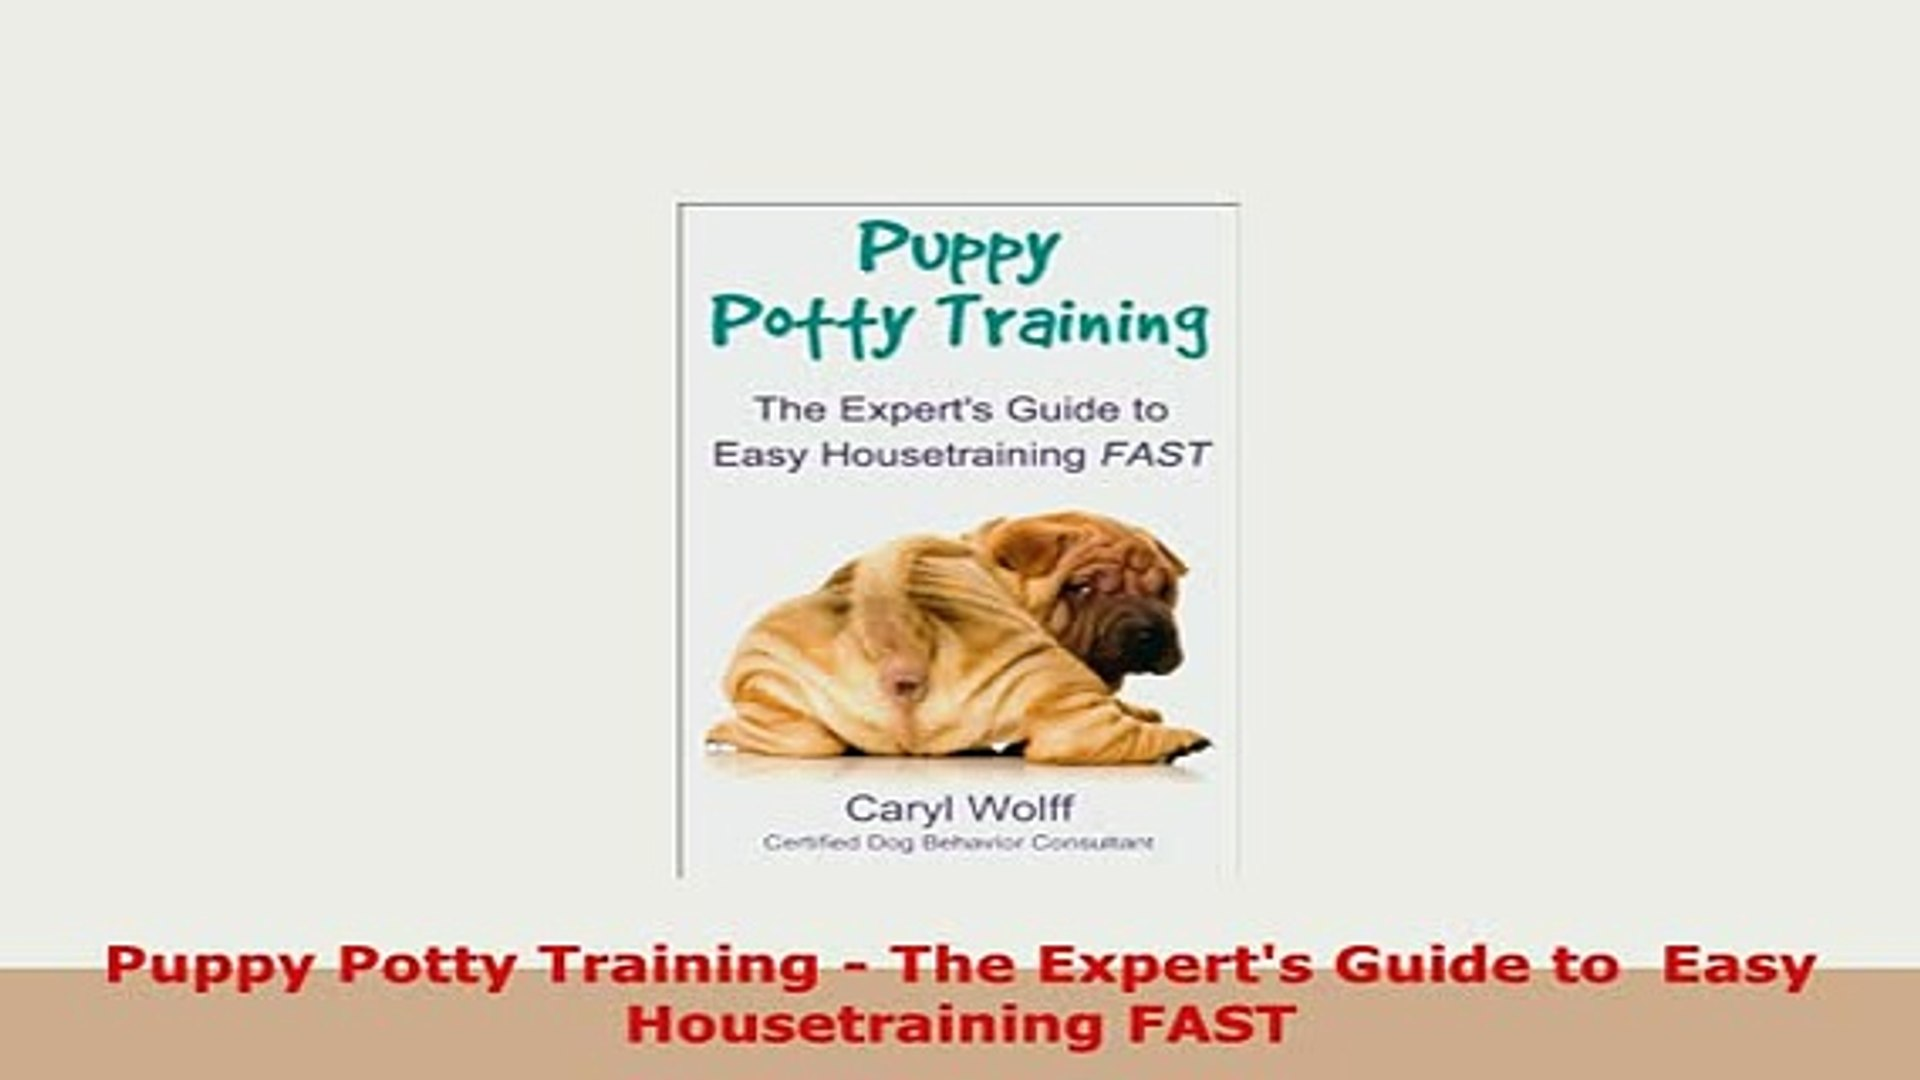 Pdf Puppy Potty Training The Experts Guide To Easy Housetraining Fast Read Full Ebook Video Dailymotion